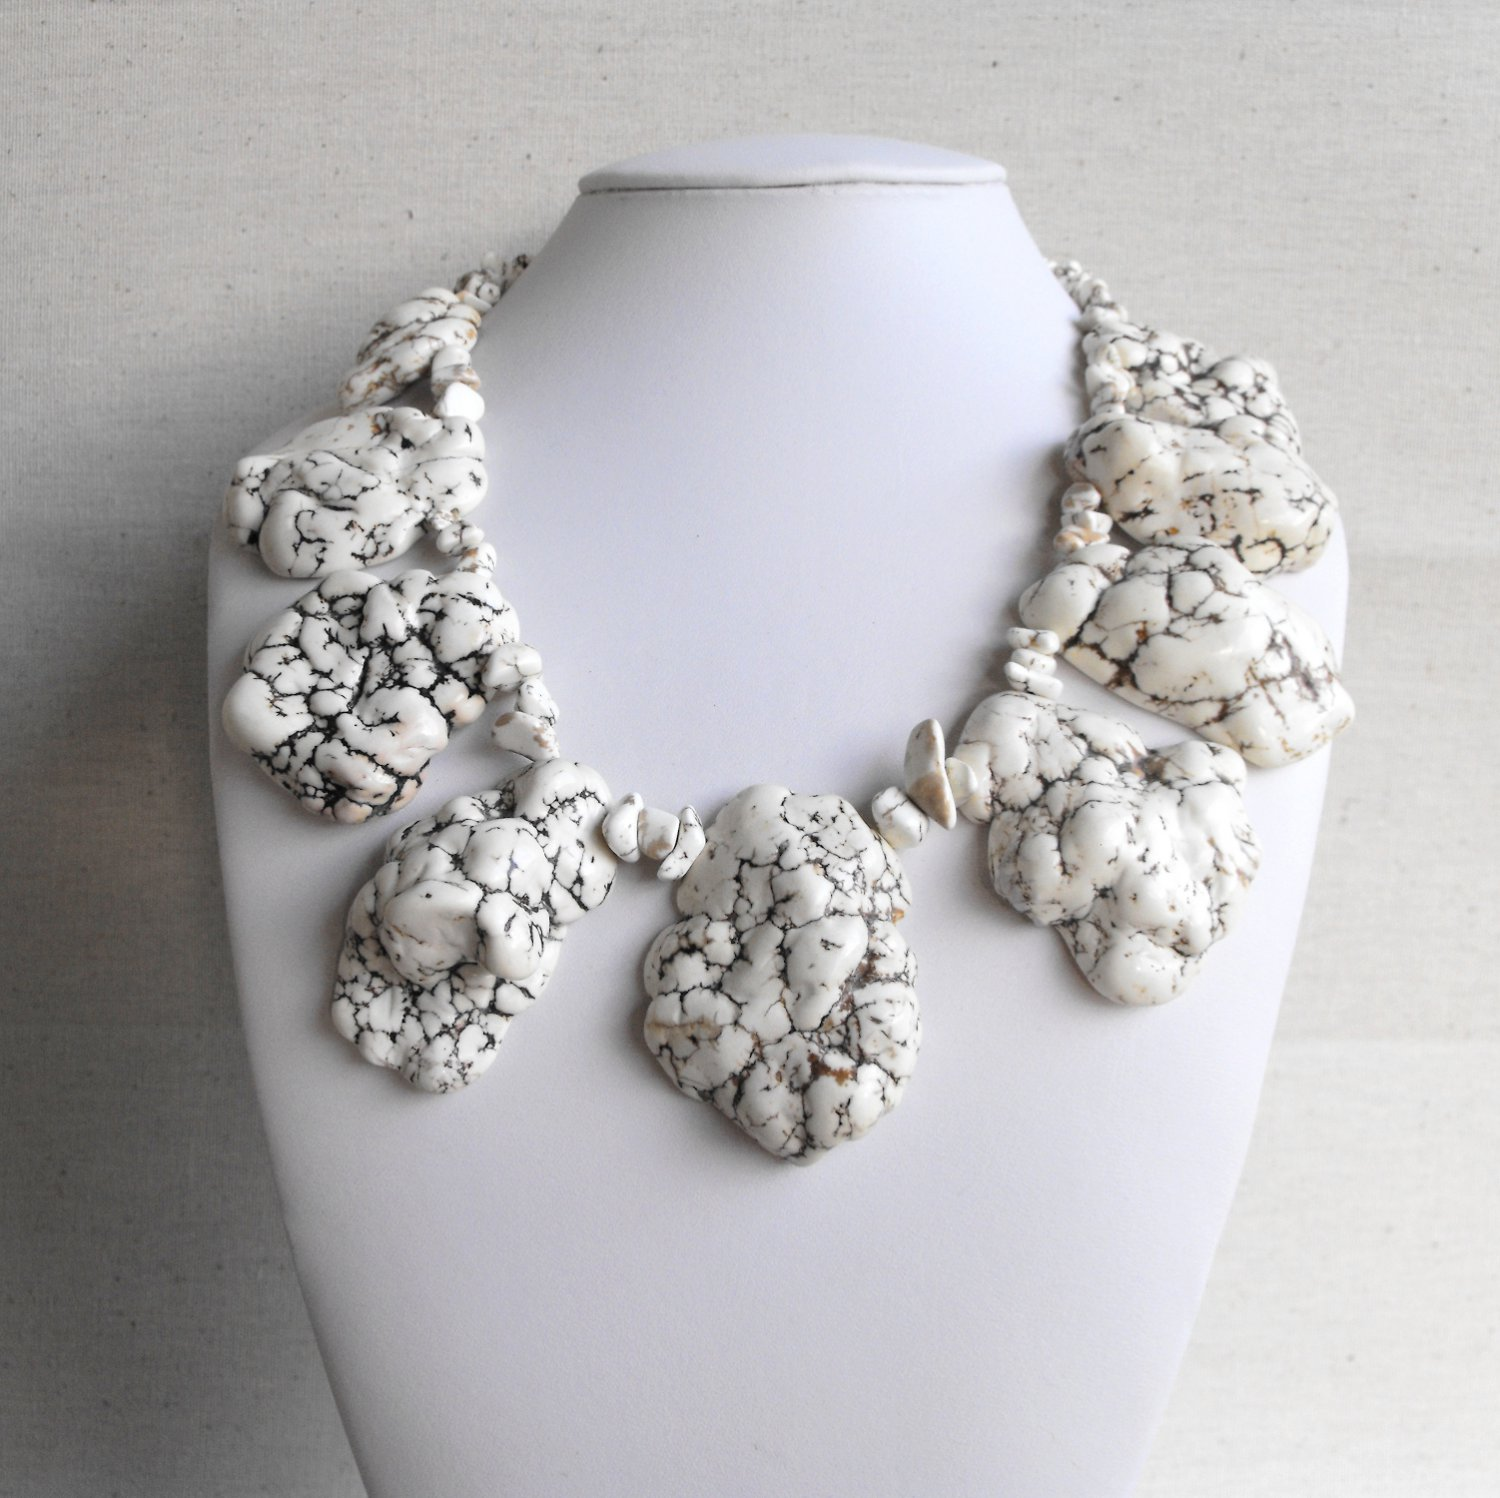 Corinna III - Super Chunky Natural Freeform White Beige Turquoise Slab Statement Necklace